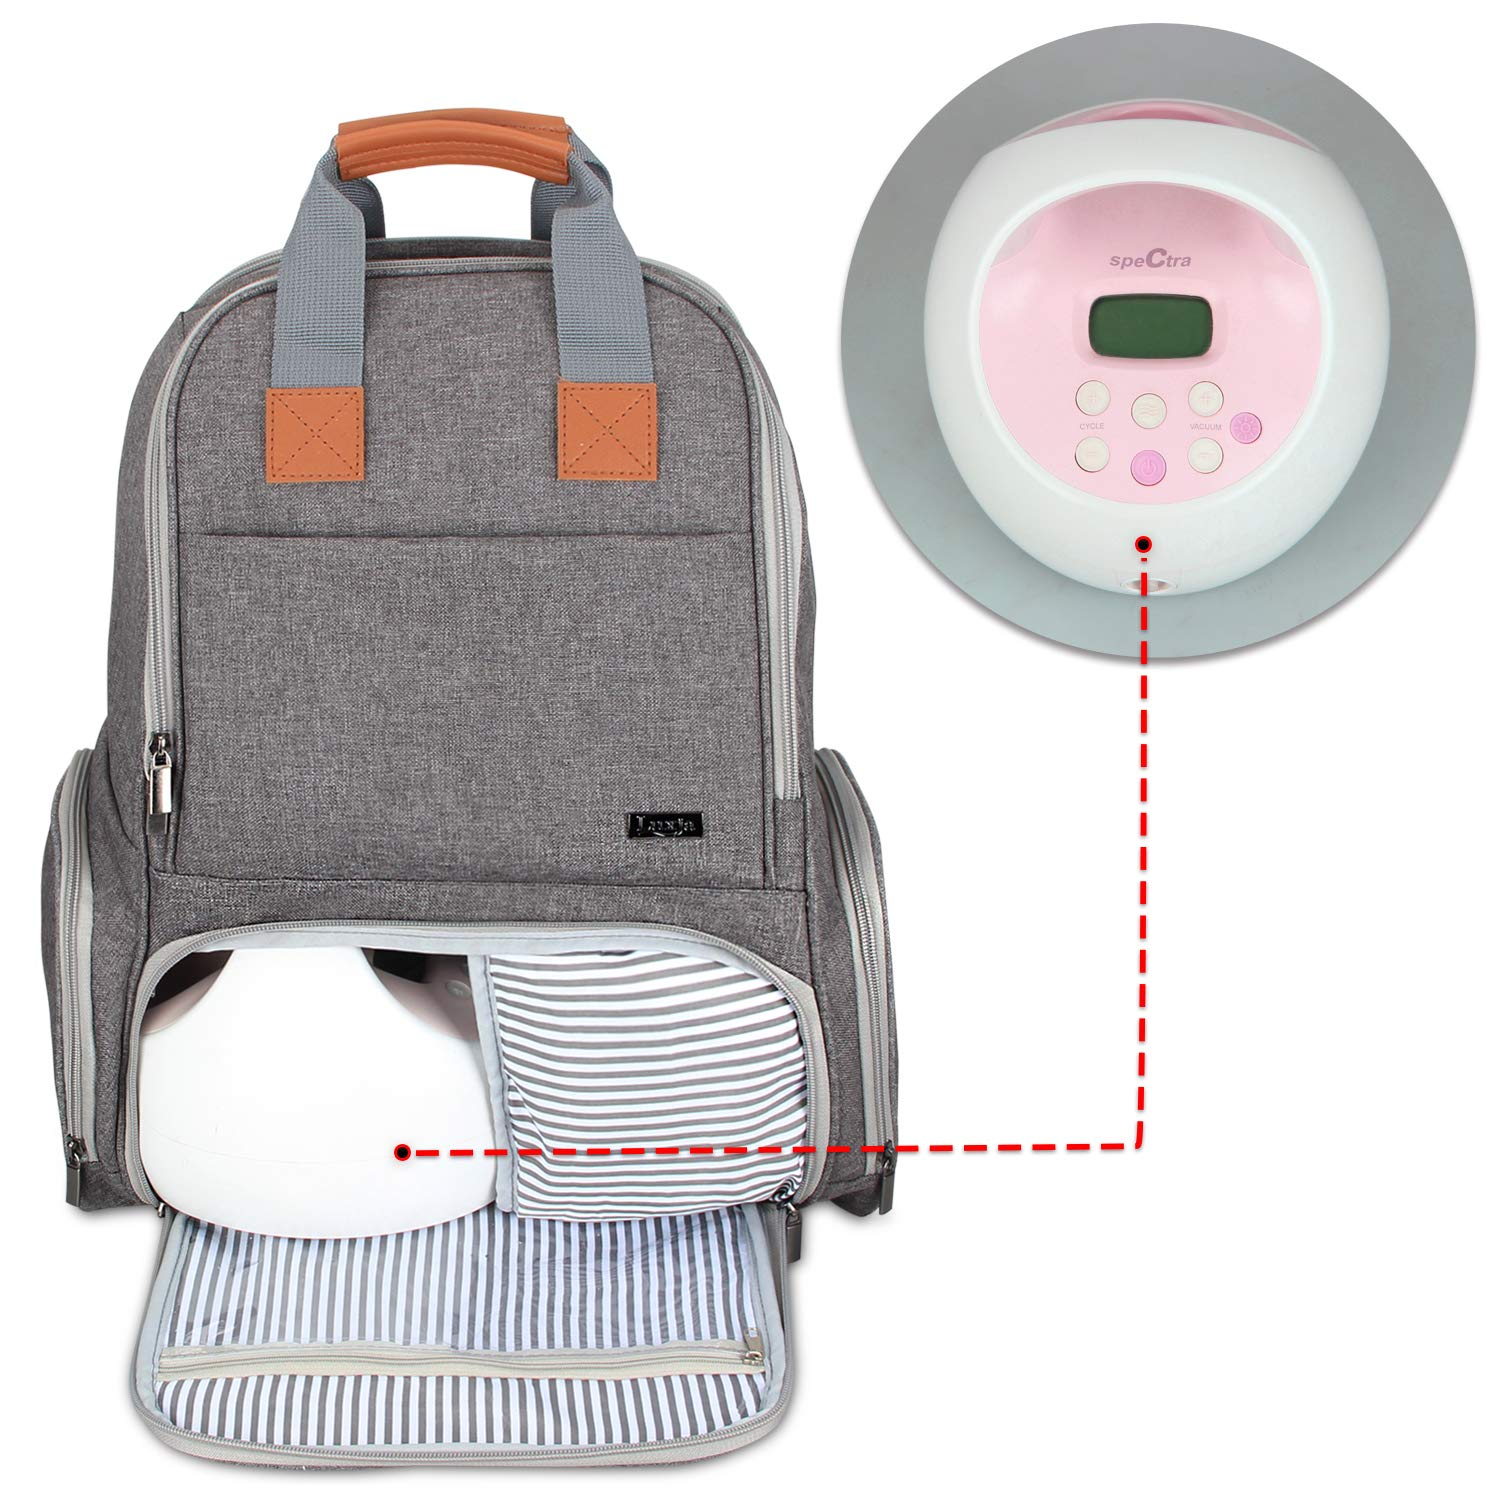 Luxja Breast Pump Backpack - Fits Most Major Brands, Gray